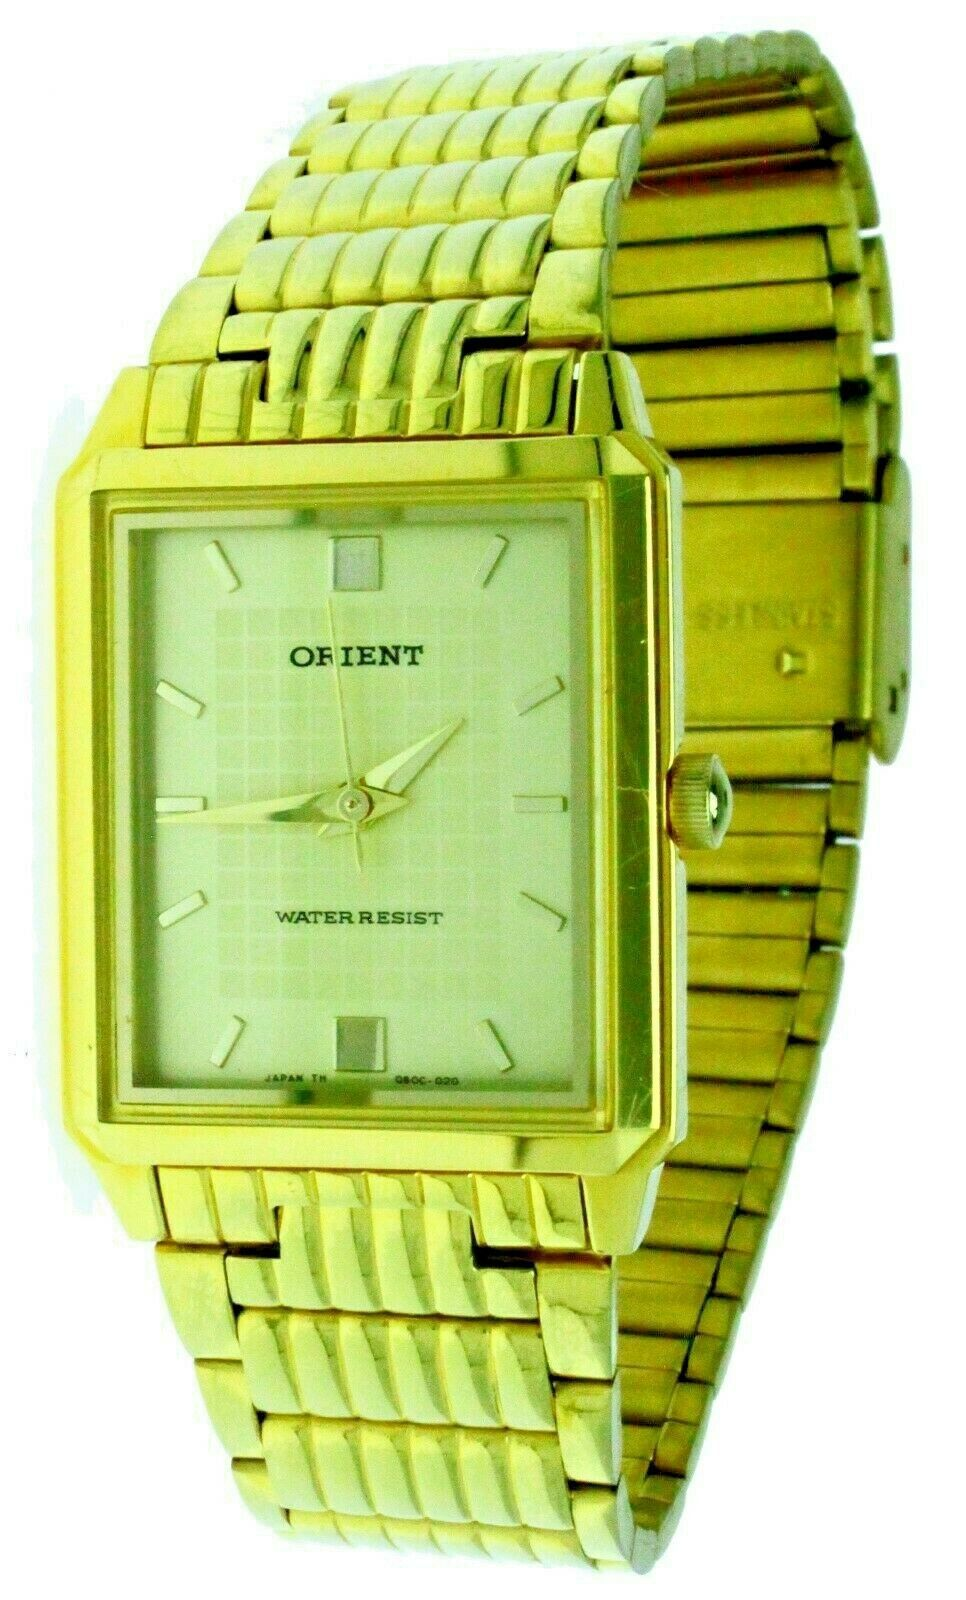 Primary image for New Thine ORIENT Stainless Steel Gold Tone Band, Case & Dial Watch Water Resist